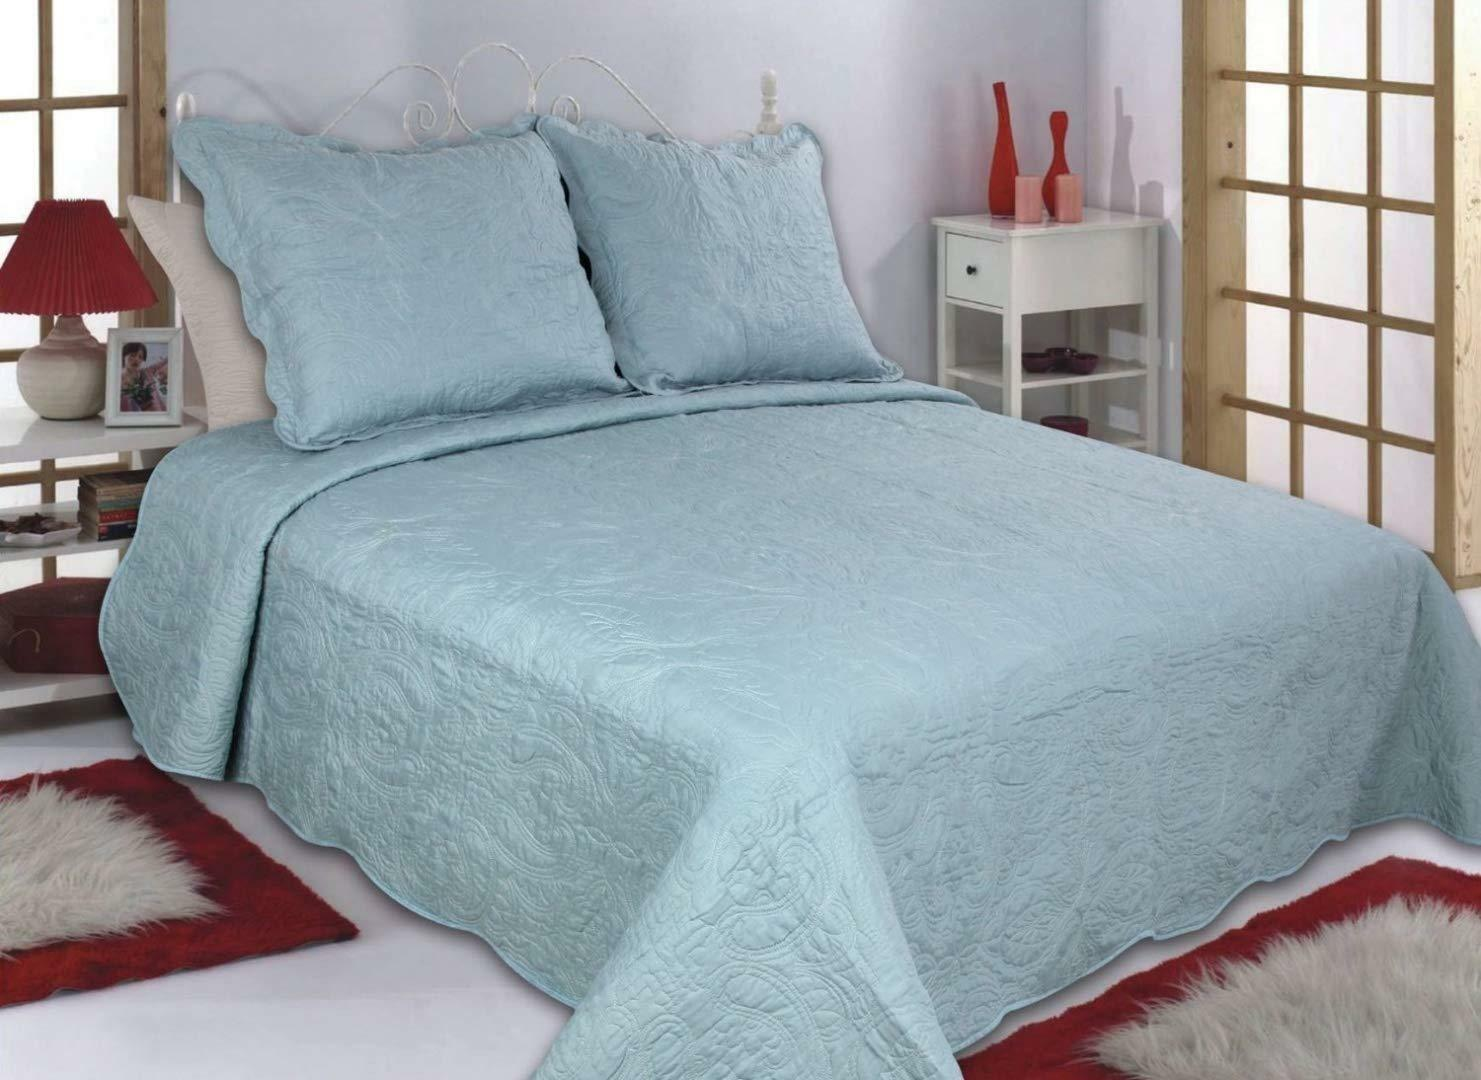 ALL FOR YOU Reversible Bedspread, Coverlet,Quilt 13 Blau Aqua Solid Farbe